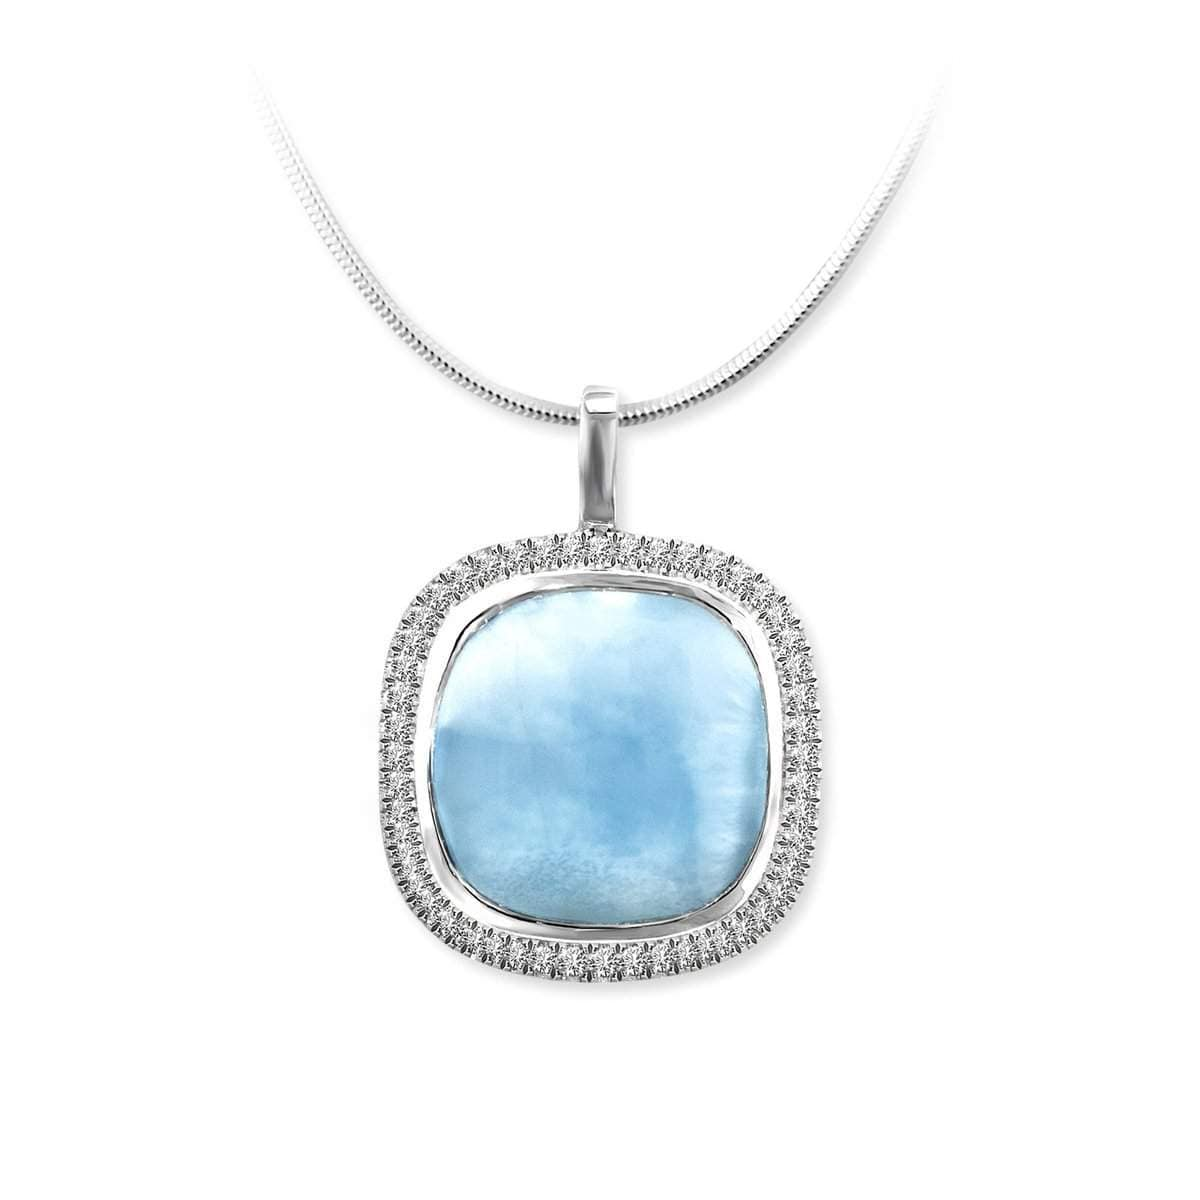 Clarity Cushion Necklace - Nclar01-00-Marahlago Larimar-Renee Taylor Gallery